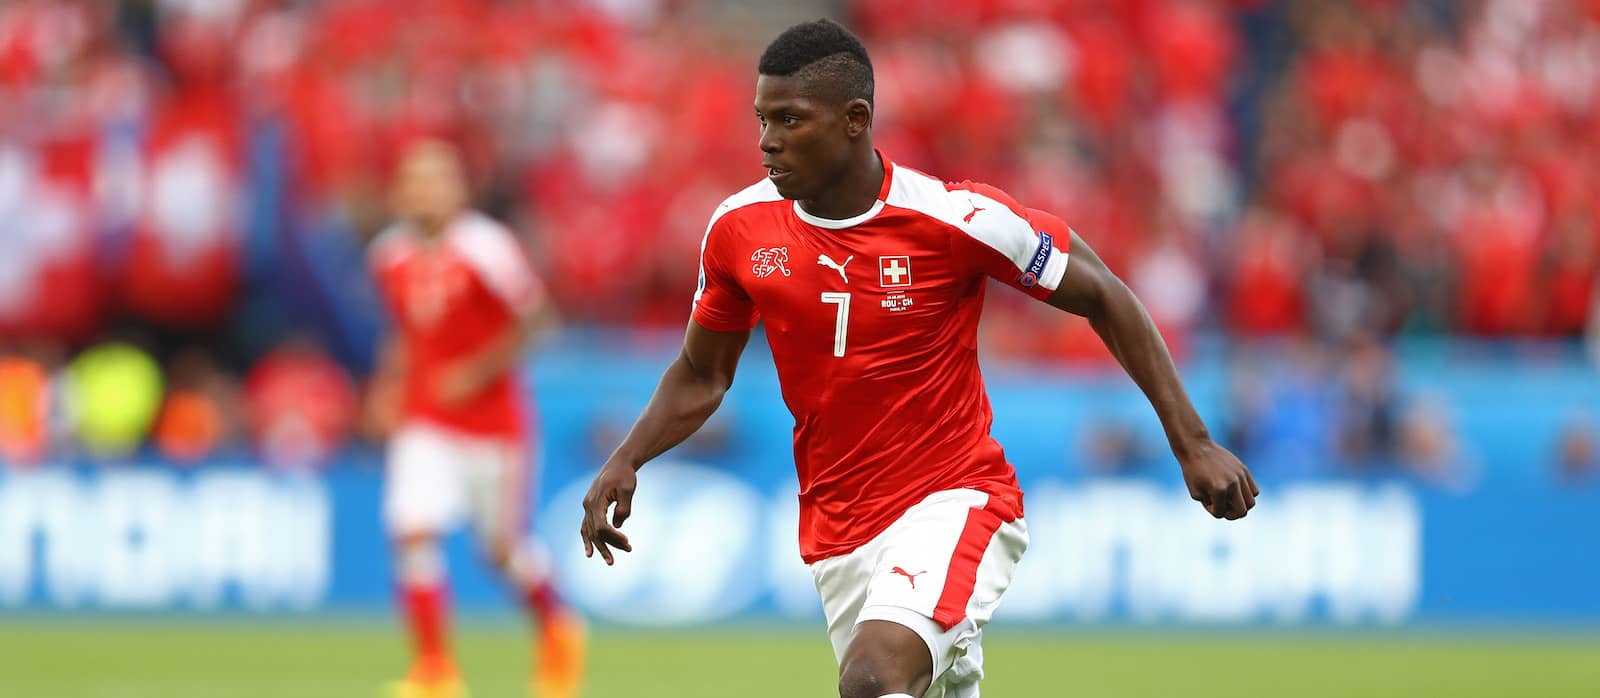 Manchester United lodge €35m bid for Breel Embolo but player's mother is unconvinced